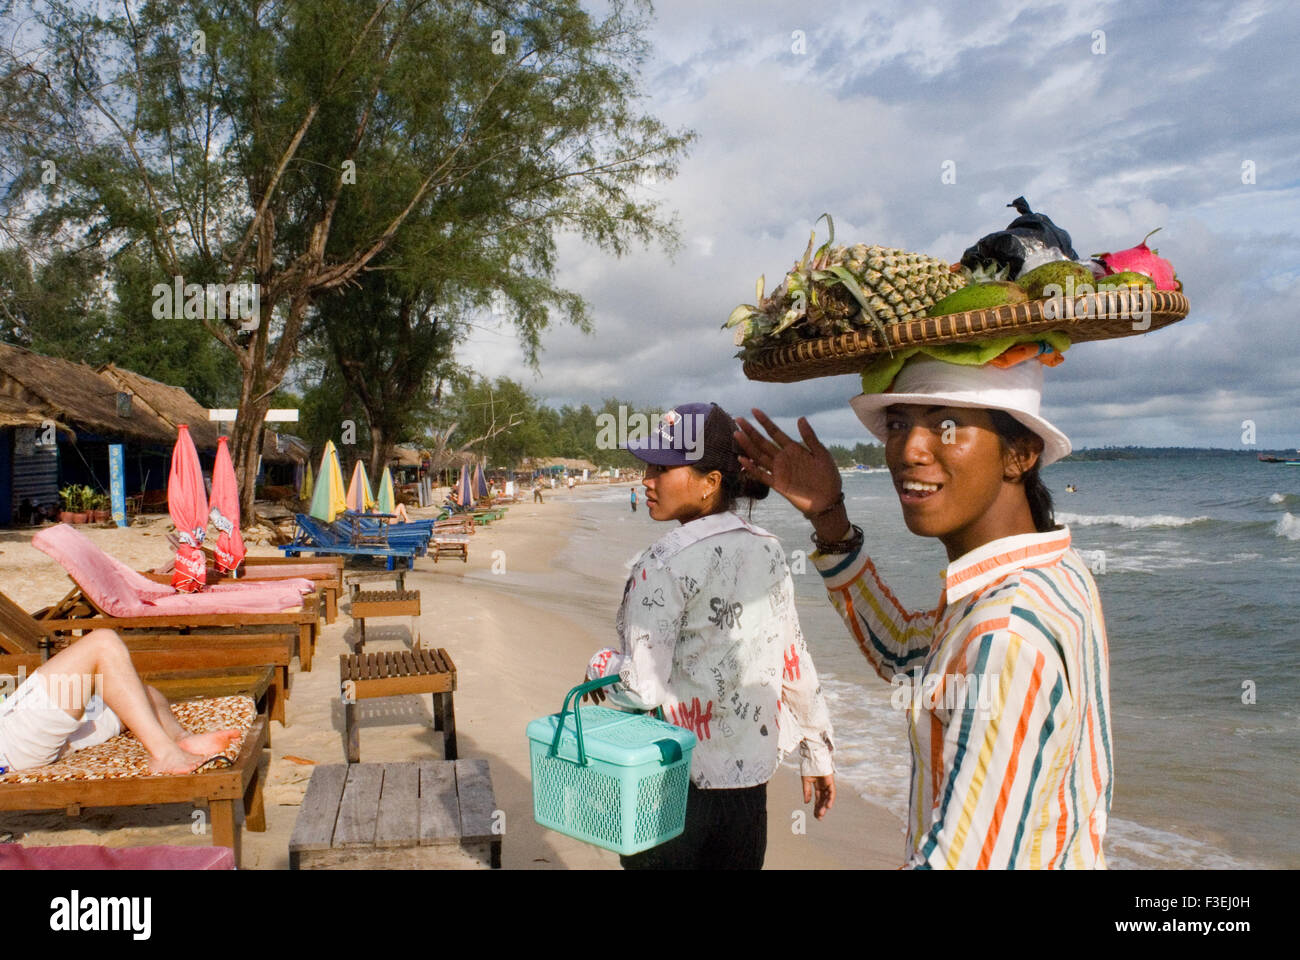 Fruit sellers on the beach in Sihanoukville. Sihanoukville, it's the 4th largest city in Cambodia but it's really - Stock Image